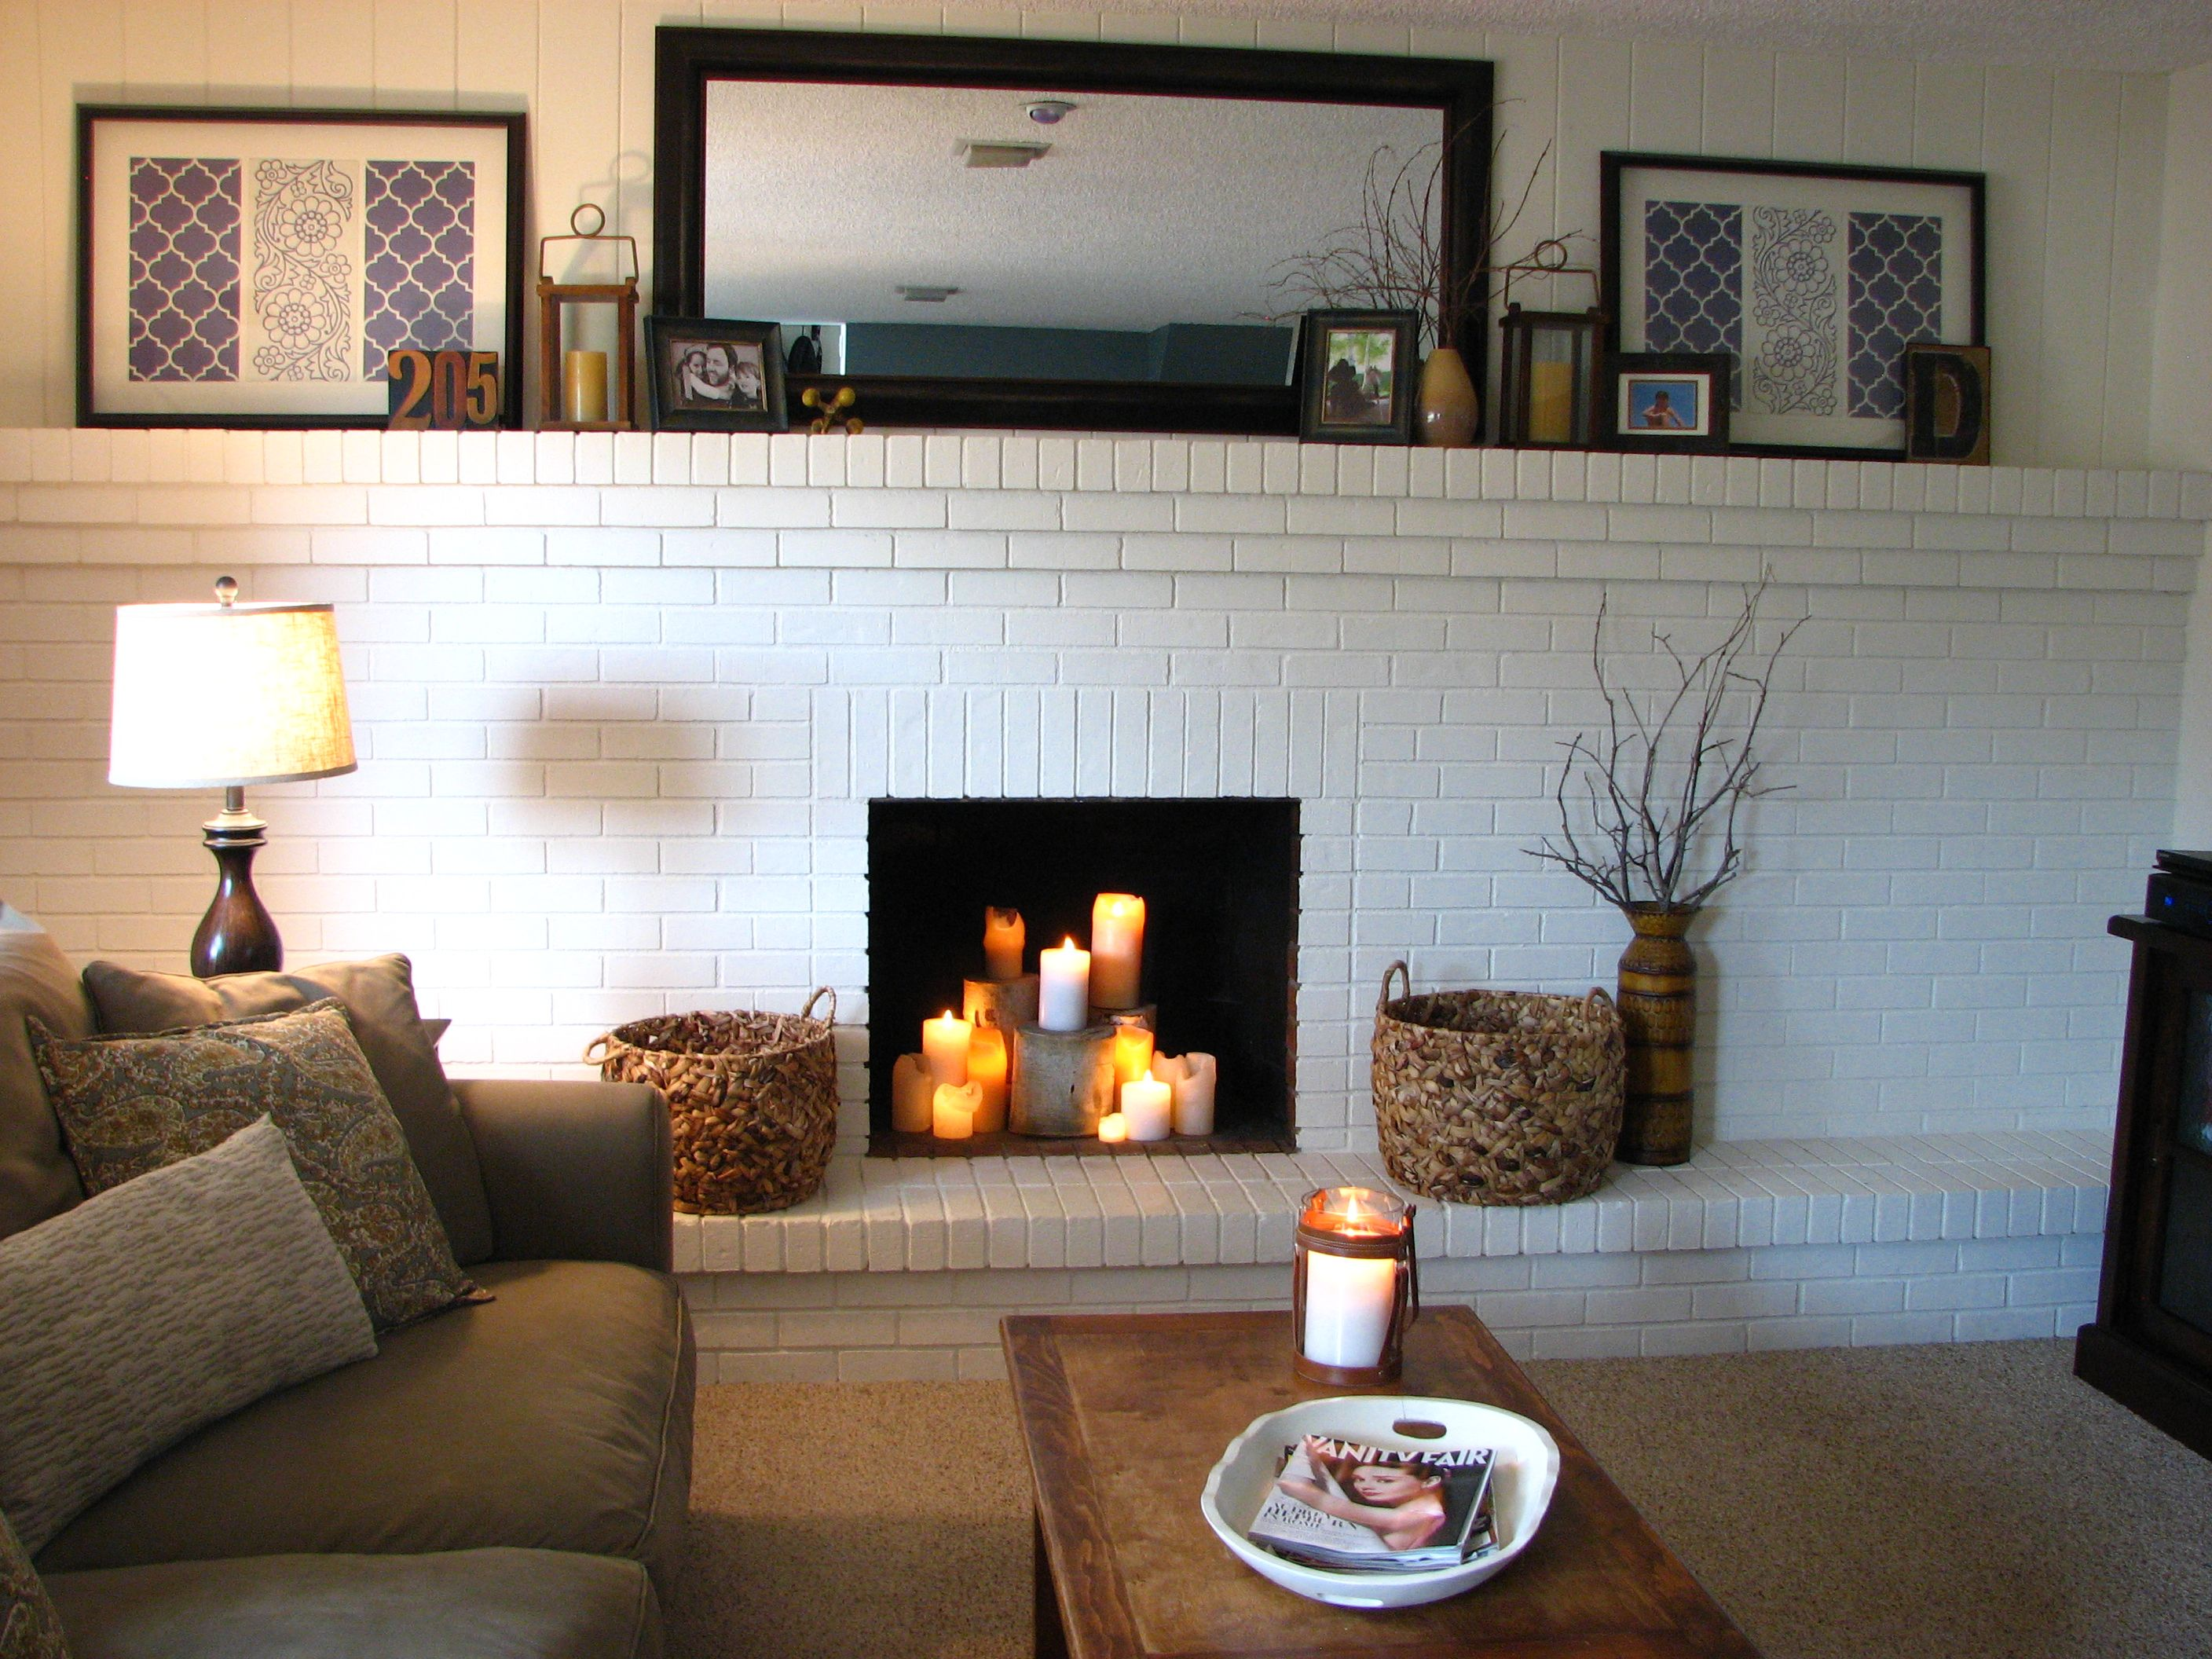 Fireplace Walls Ideas Pleasing Best 25 Brick Fireplace Wall Ideas On Pinterest  Brick Fireplace Decorating Inspiration